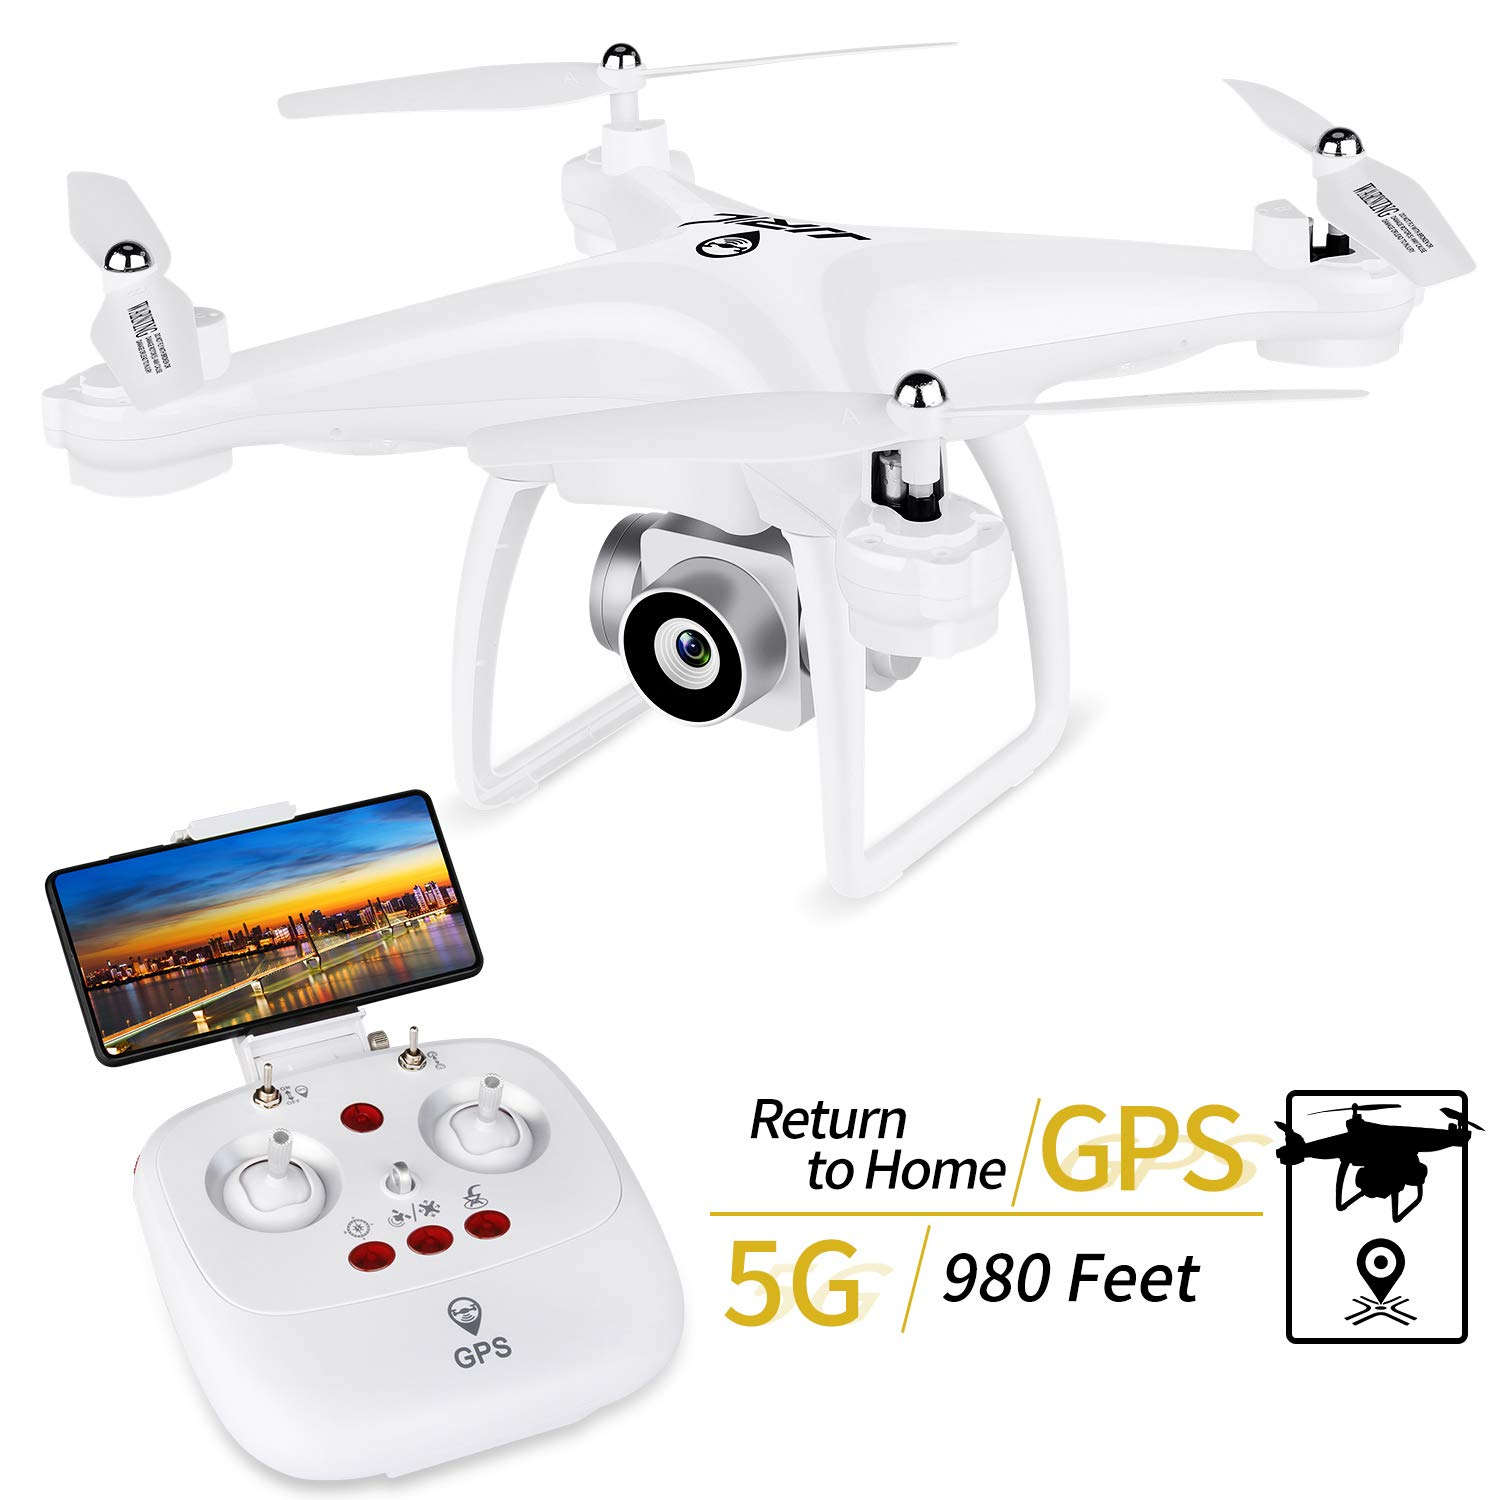 GPS Return Home Drone, JJRC H68G RC Drone with 720P HD Camera Live Video 120° Wide-Angle 5G WiFi Quadcopter with 980ft Control Distances, Follow Me, Altitude Hold Headless Mode 3D Flips (White)